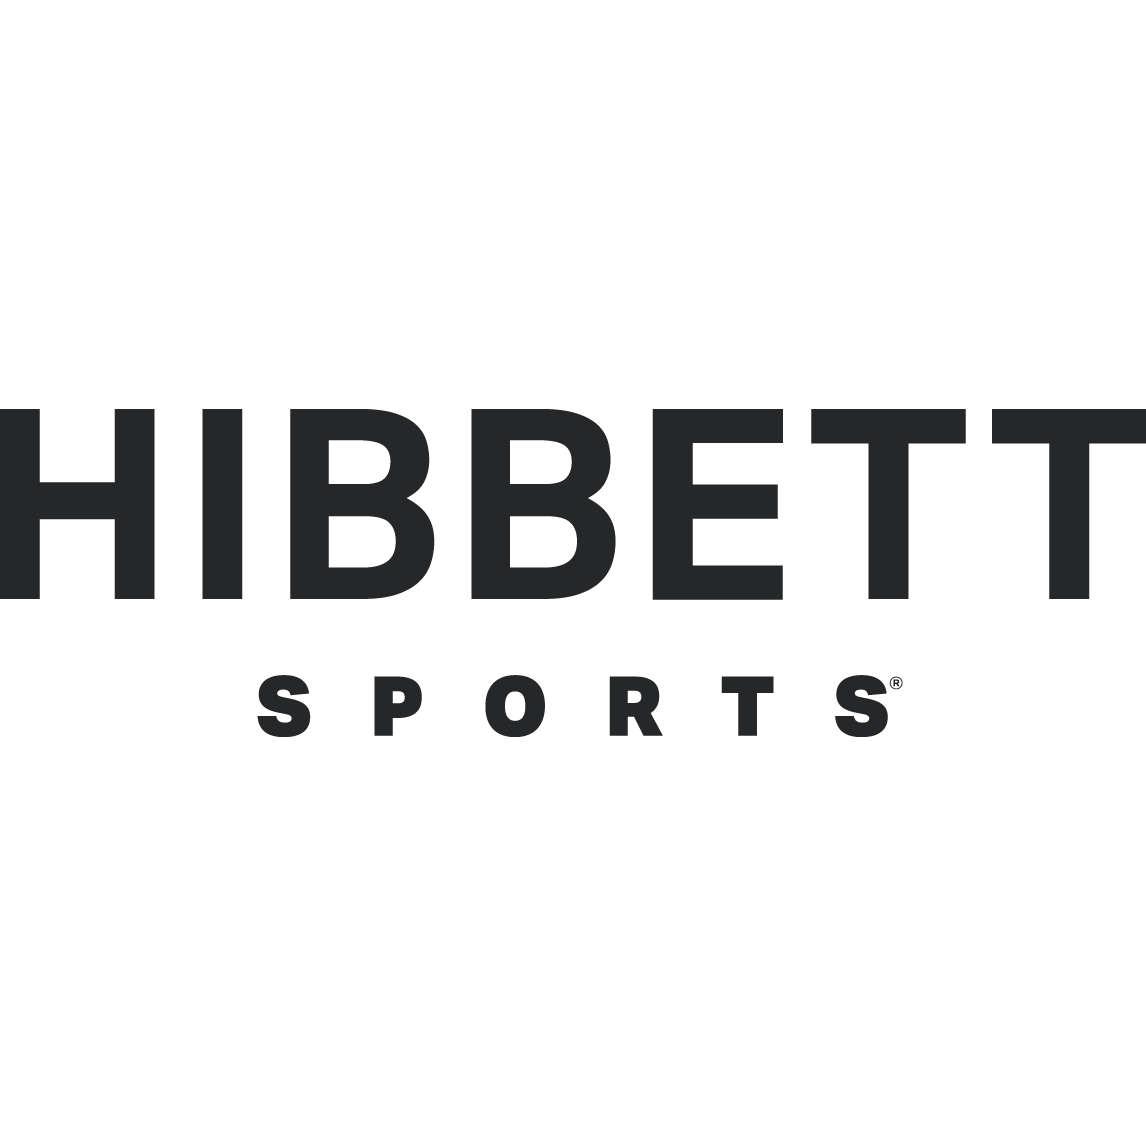 Hibbett Sports image 2